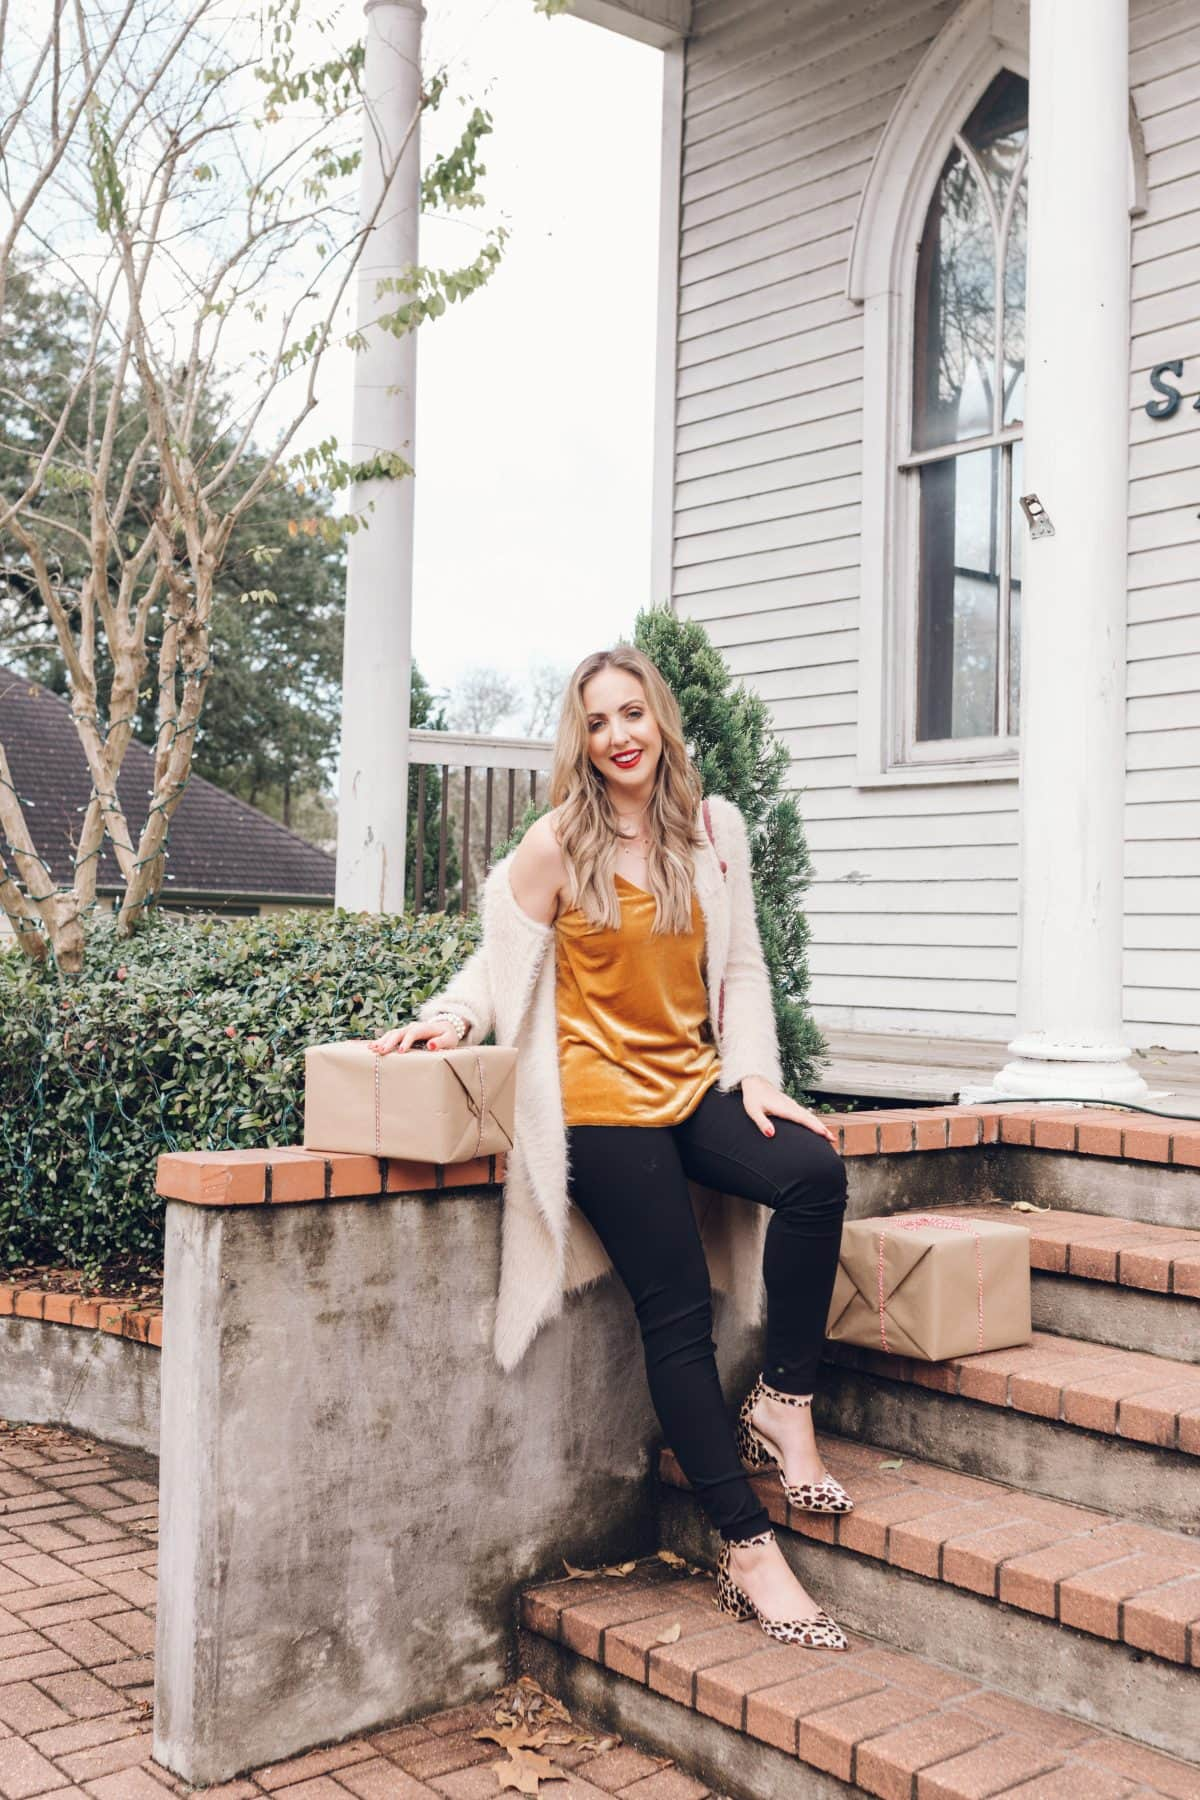 Houston blogger Meg O. on the Go shares a beautiful holiday outfit from Evereve